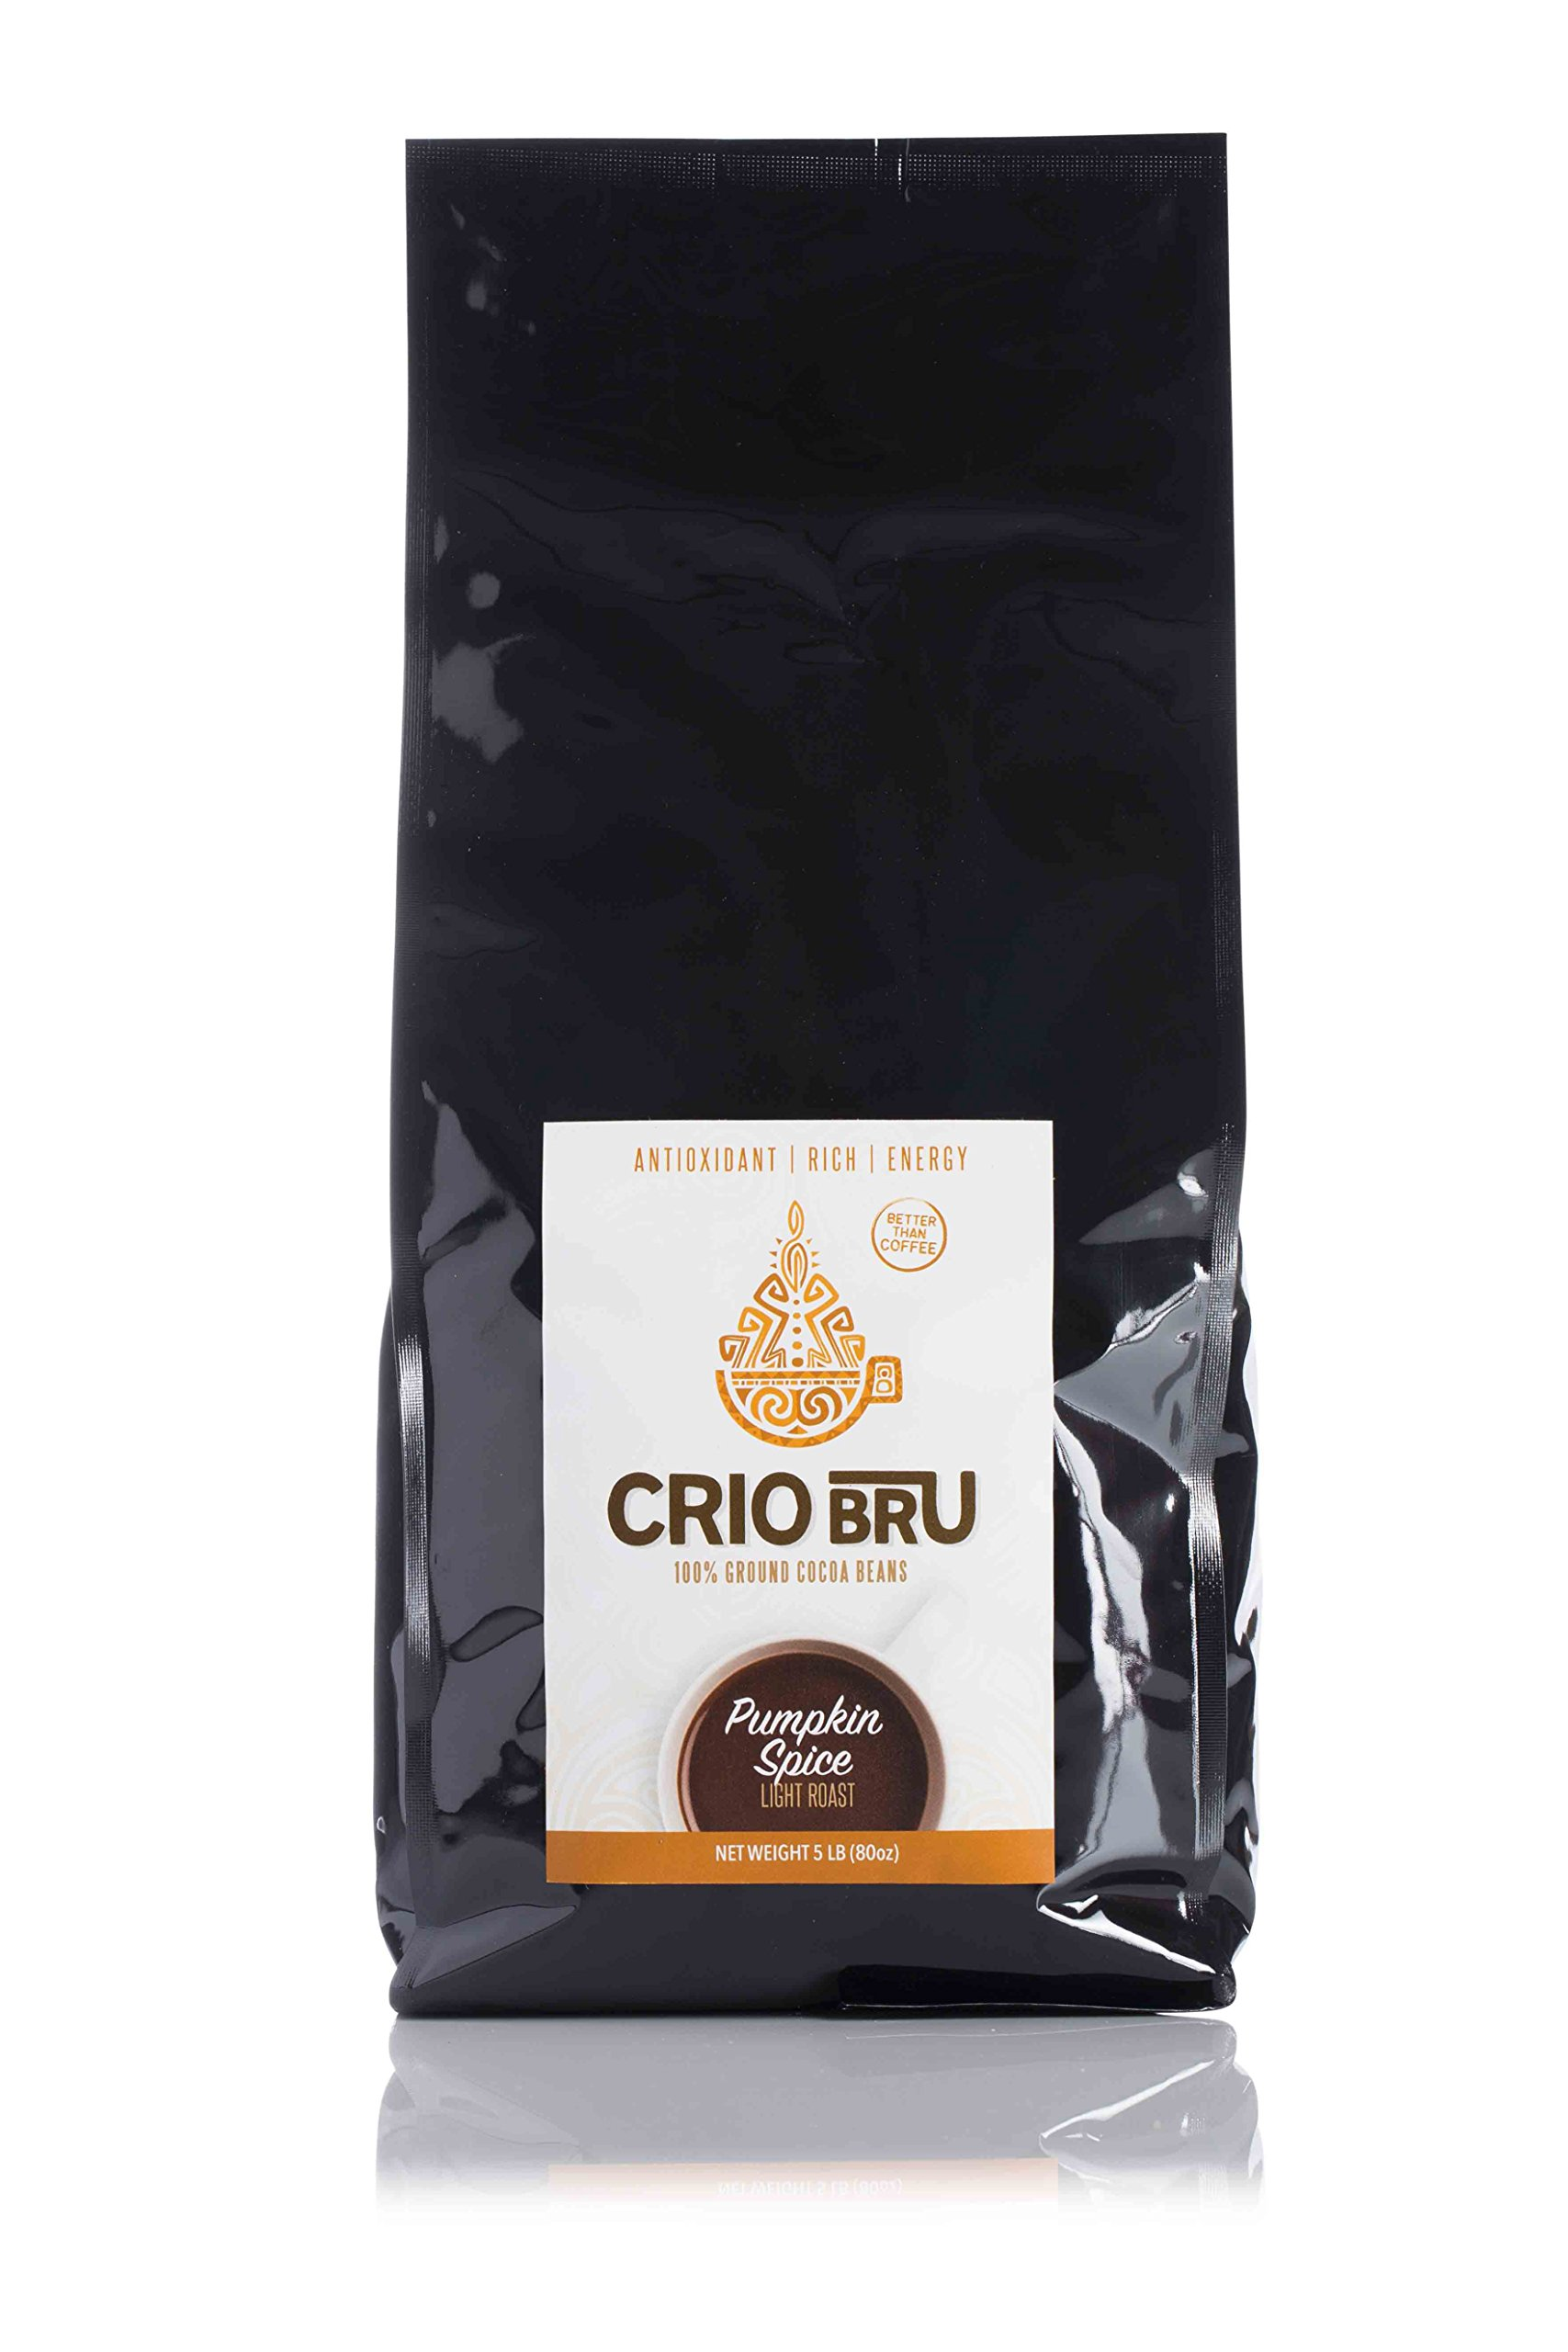 Crio Bru Pumpkin Spice Light Roast 80oz (5 lb) Bag | Organic Healthy Brewed Cacao Drink | Great Substitute to Herbal Tea and Coffee | 99% Caffeine Free Gluten Free Whole-30 Low Calorie Honest Energy